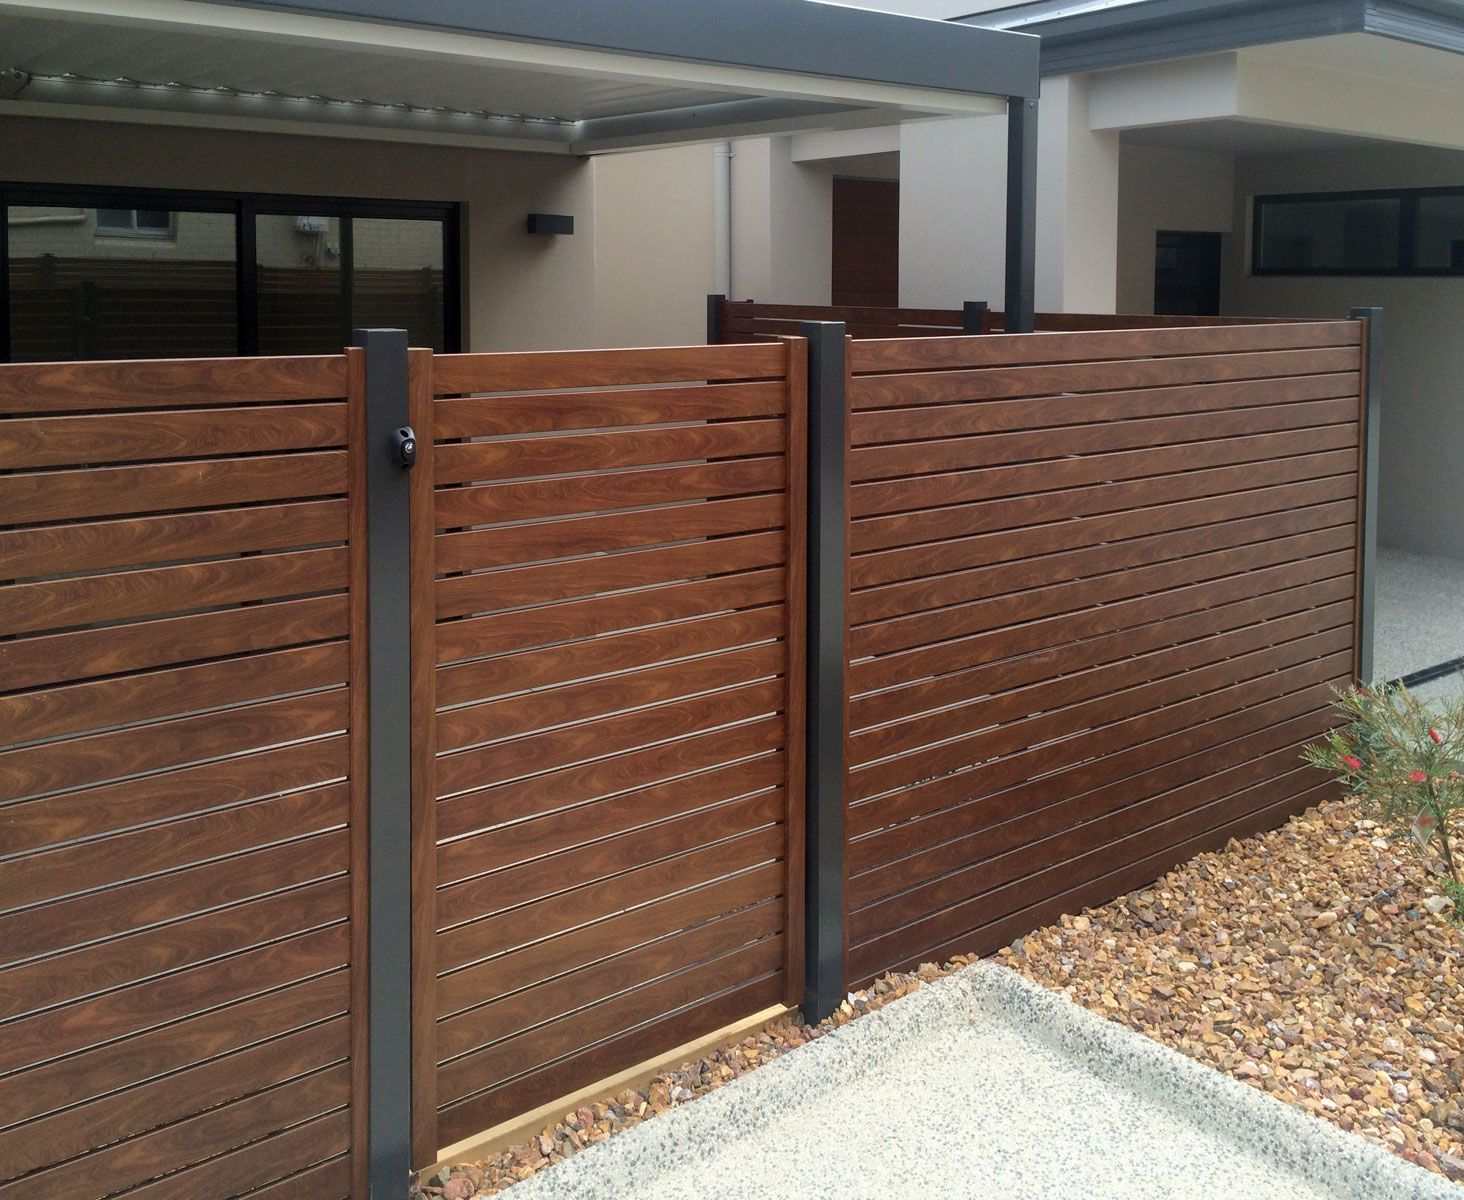 Ezi-Slat Fencing | Stratco | pathways in 2019 | Timber slats